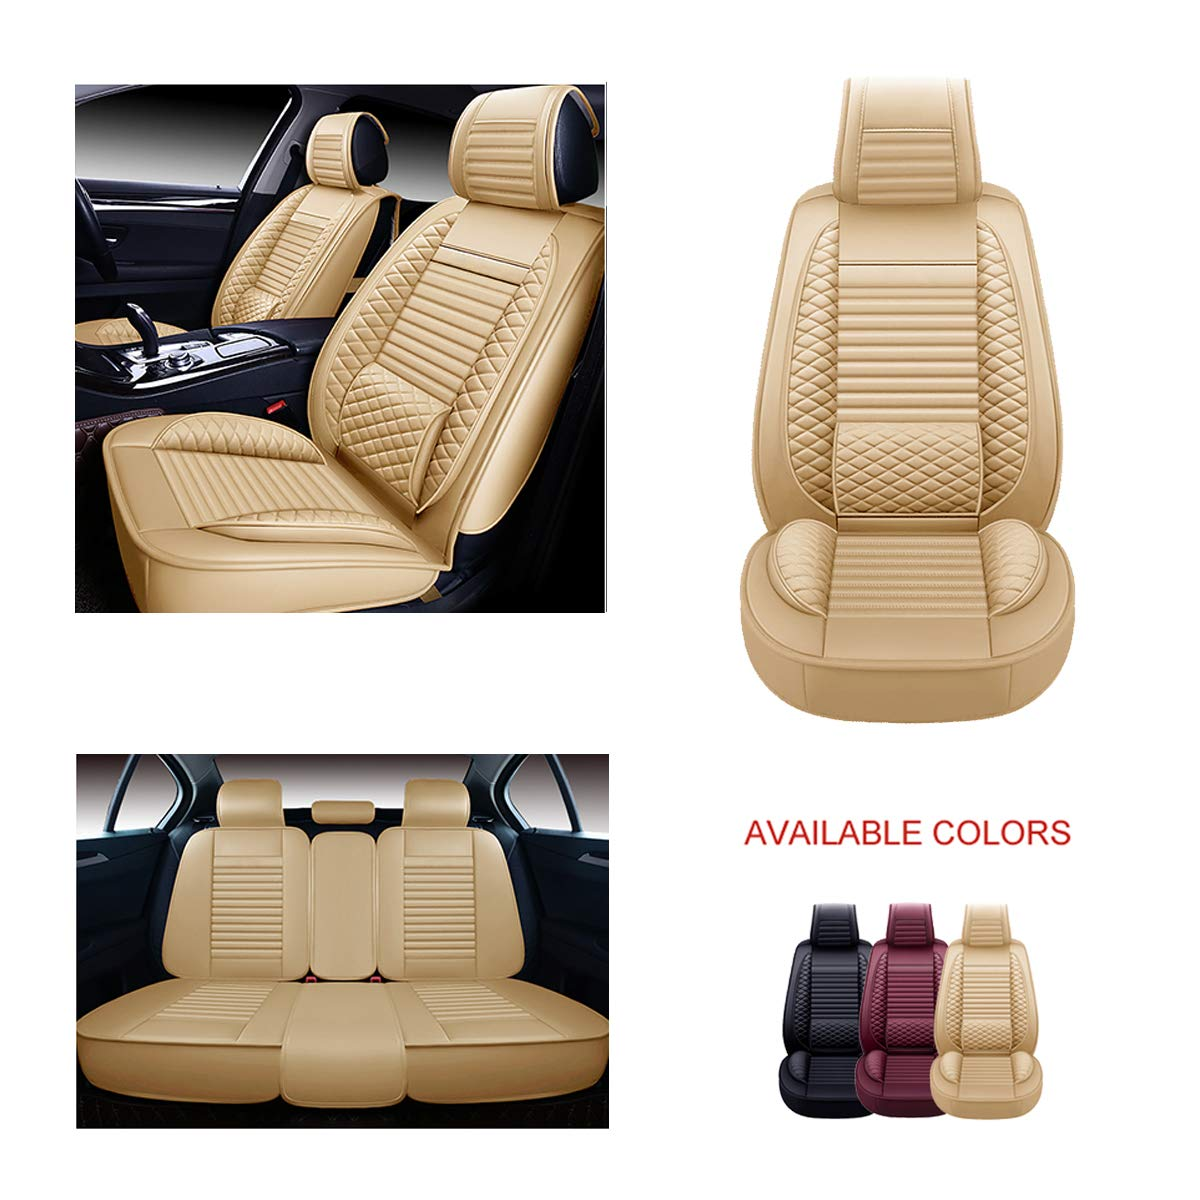 OASIS AUTO OS-001 Leather Car Seat Covers Faux Leatherette Automotive Vehicle Cushion Cover for Cars SUV Pick-up Truck Universal Fit Set for Auto Interior Accessories Full Set, Black